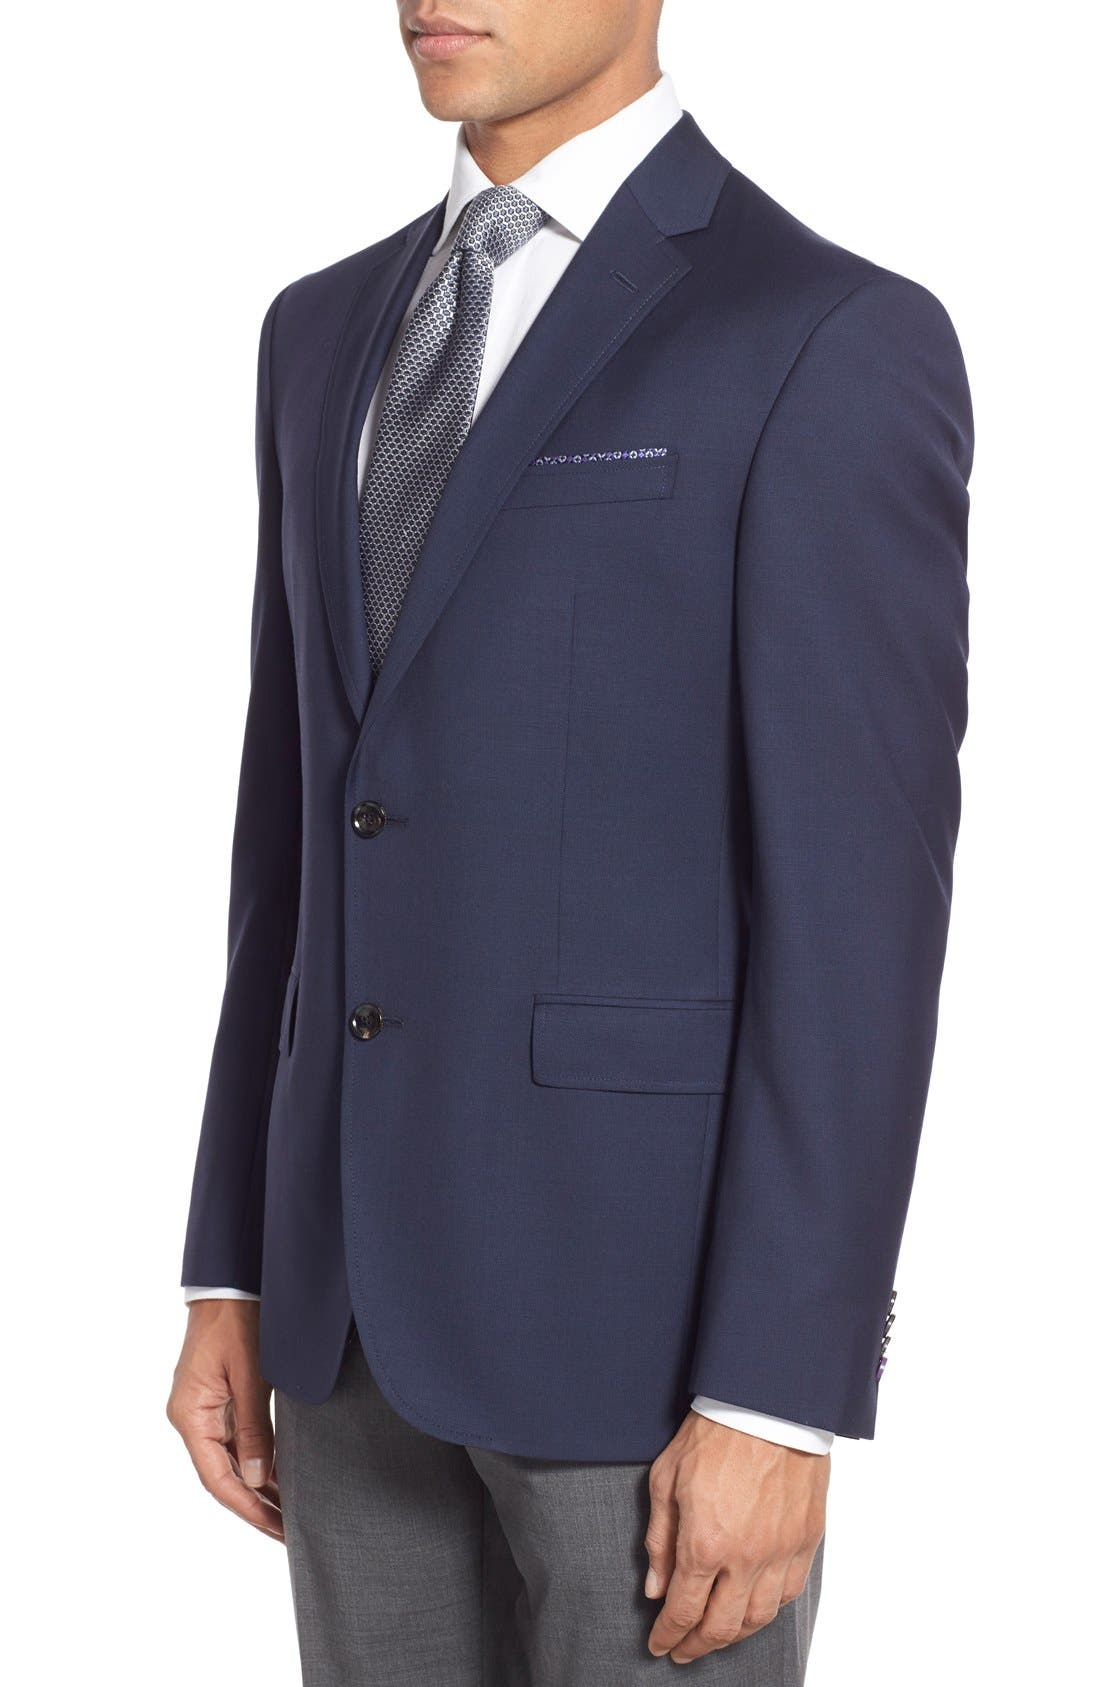 Trevi Trim Fit Wool Blazer,                             Alternate thumbnail 3, color,                             Navy